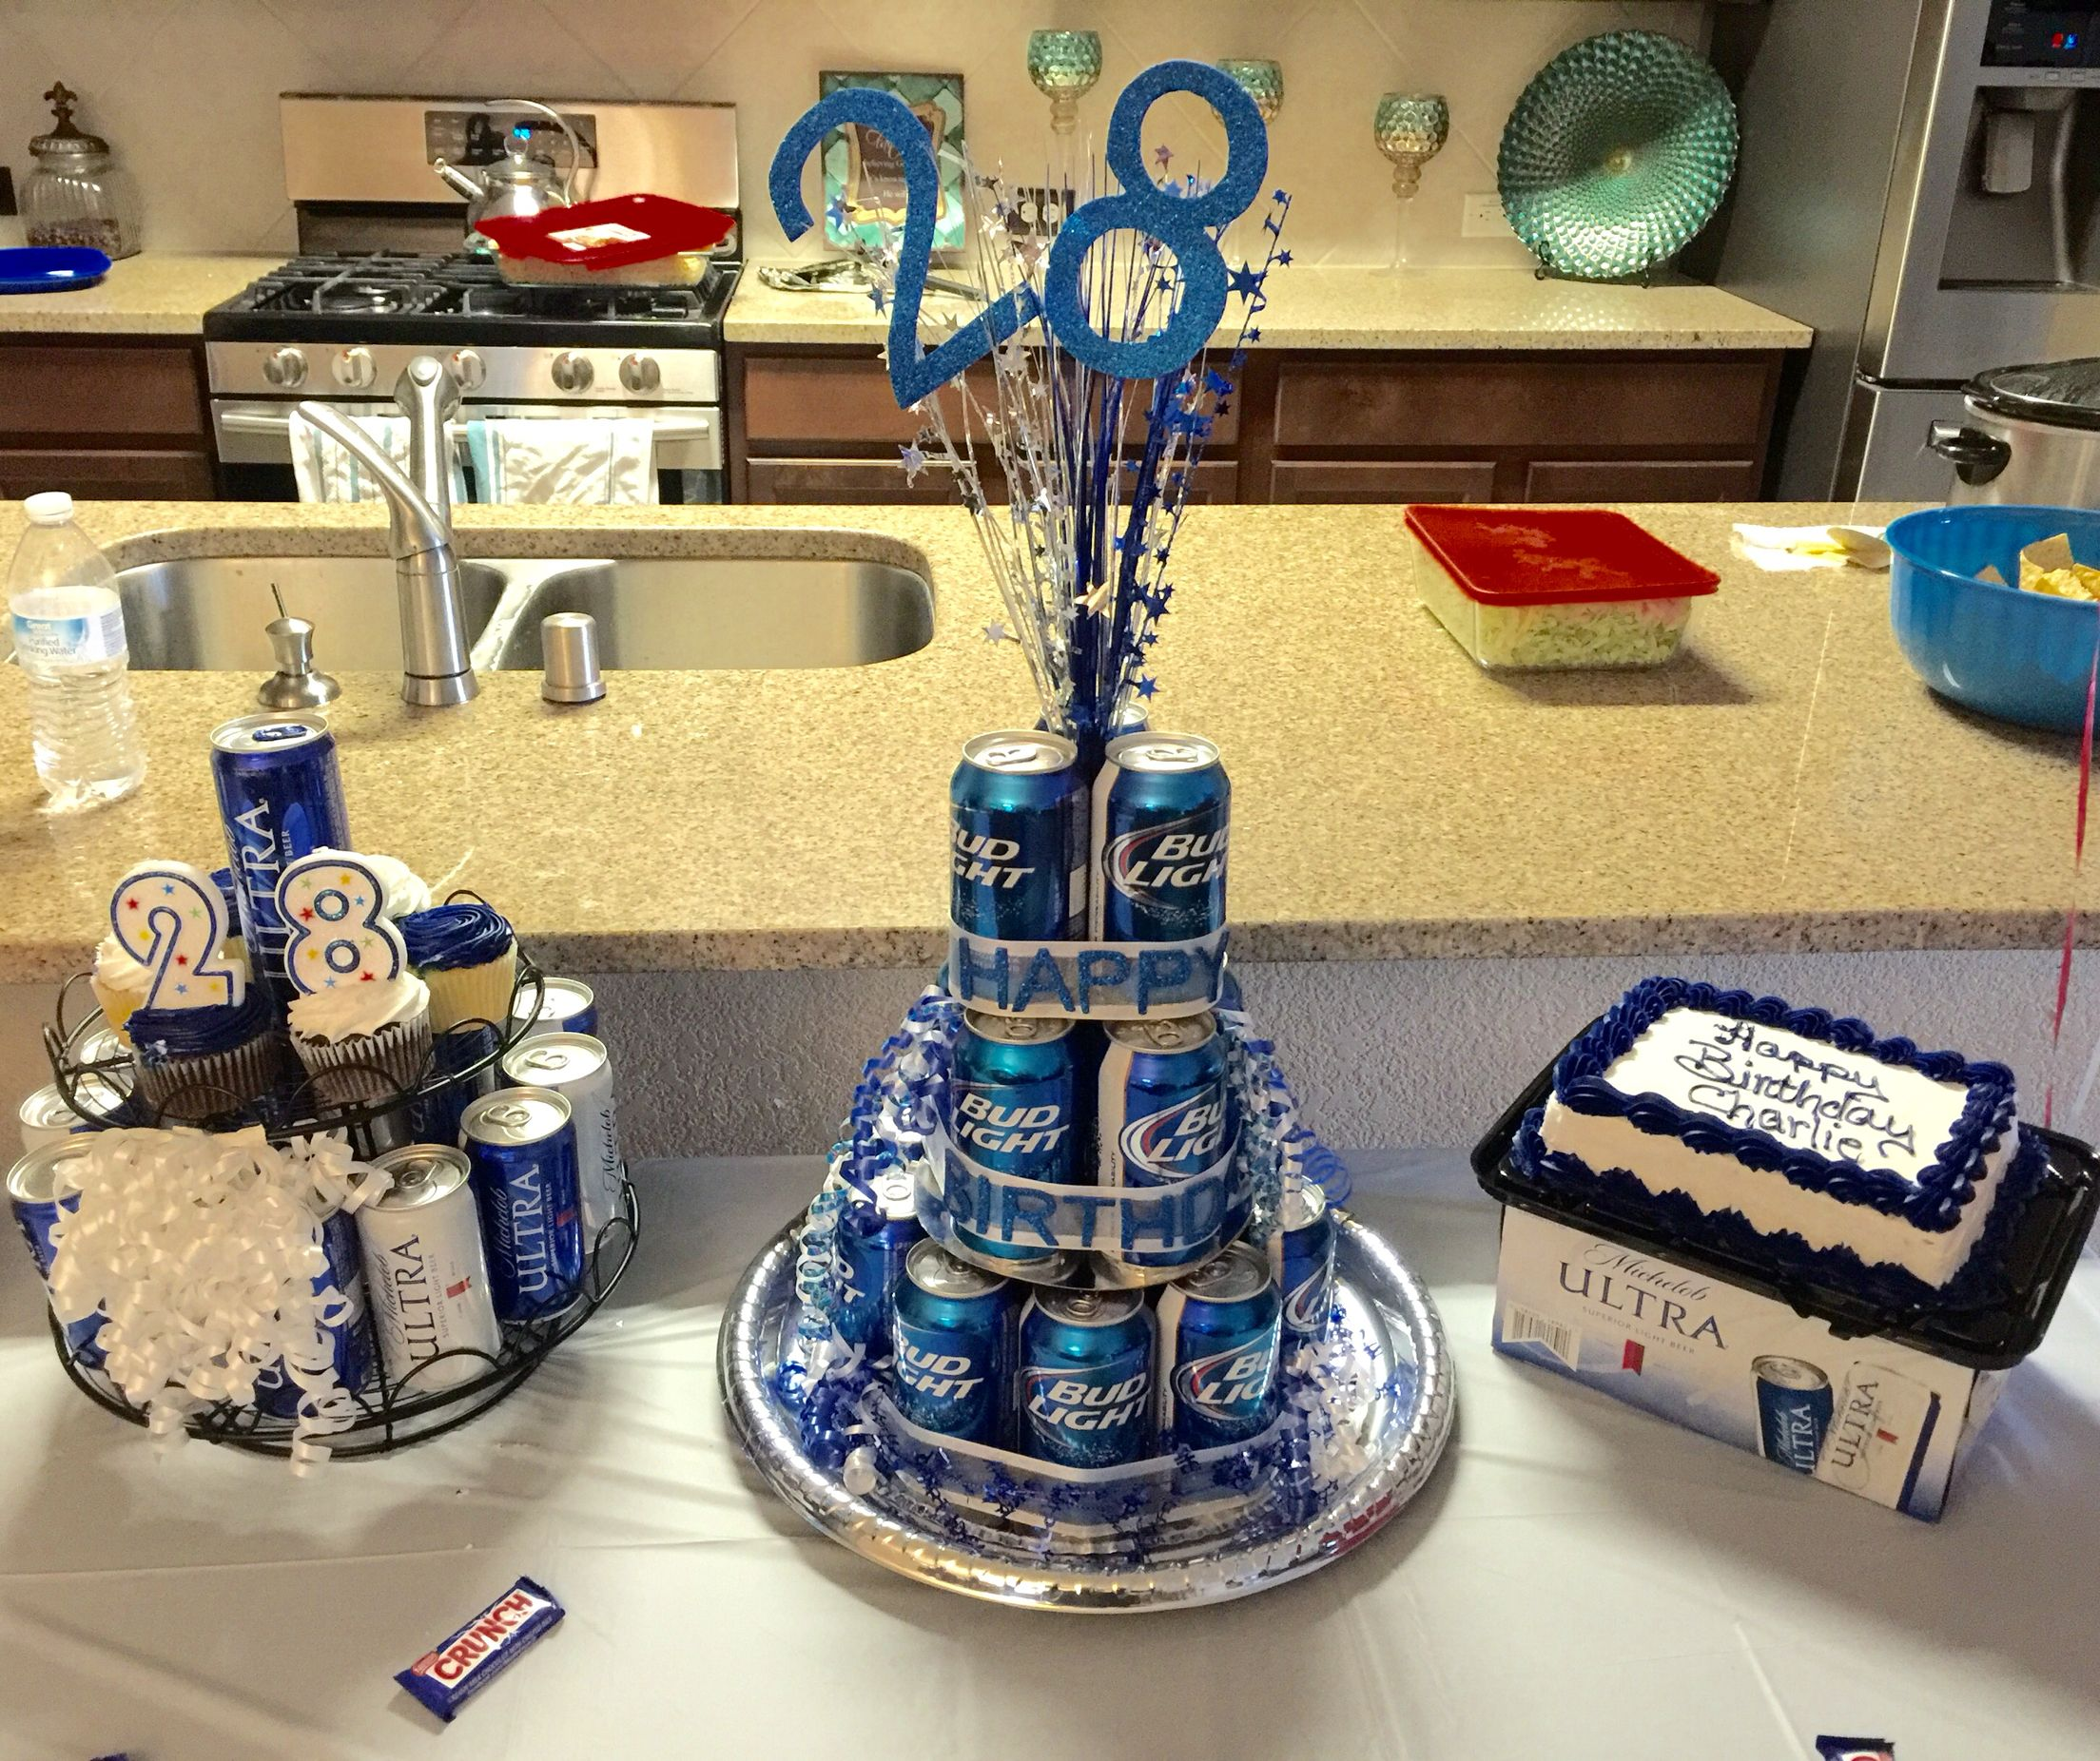 Beer Birthday Cakes For My Brother 28th Birthday Birthday Beer Cake Bud Light Birthday Cake 28th Birthday